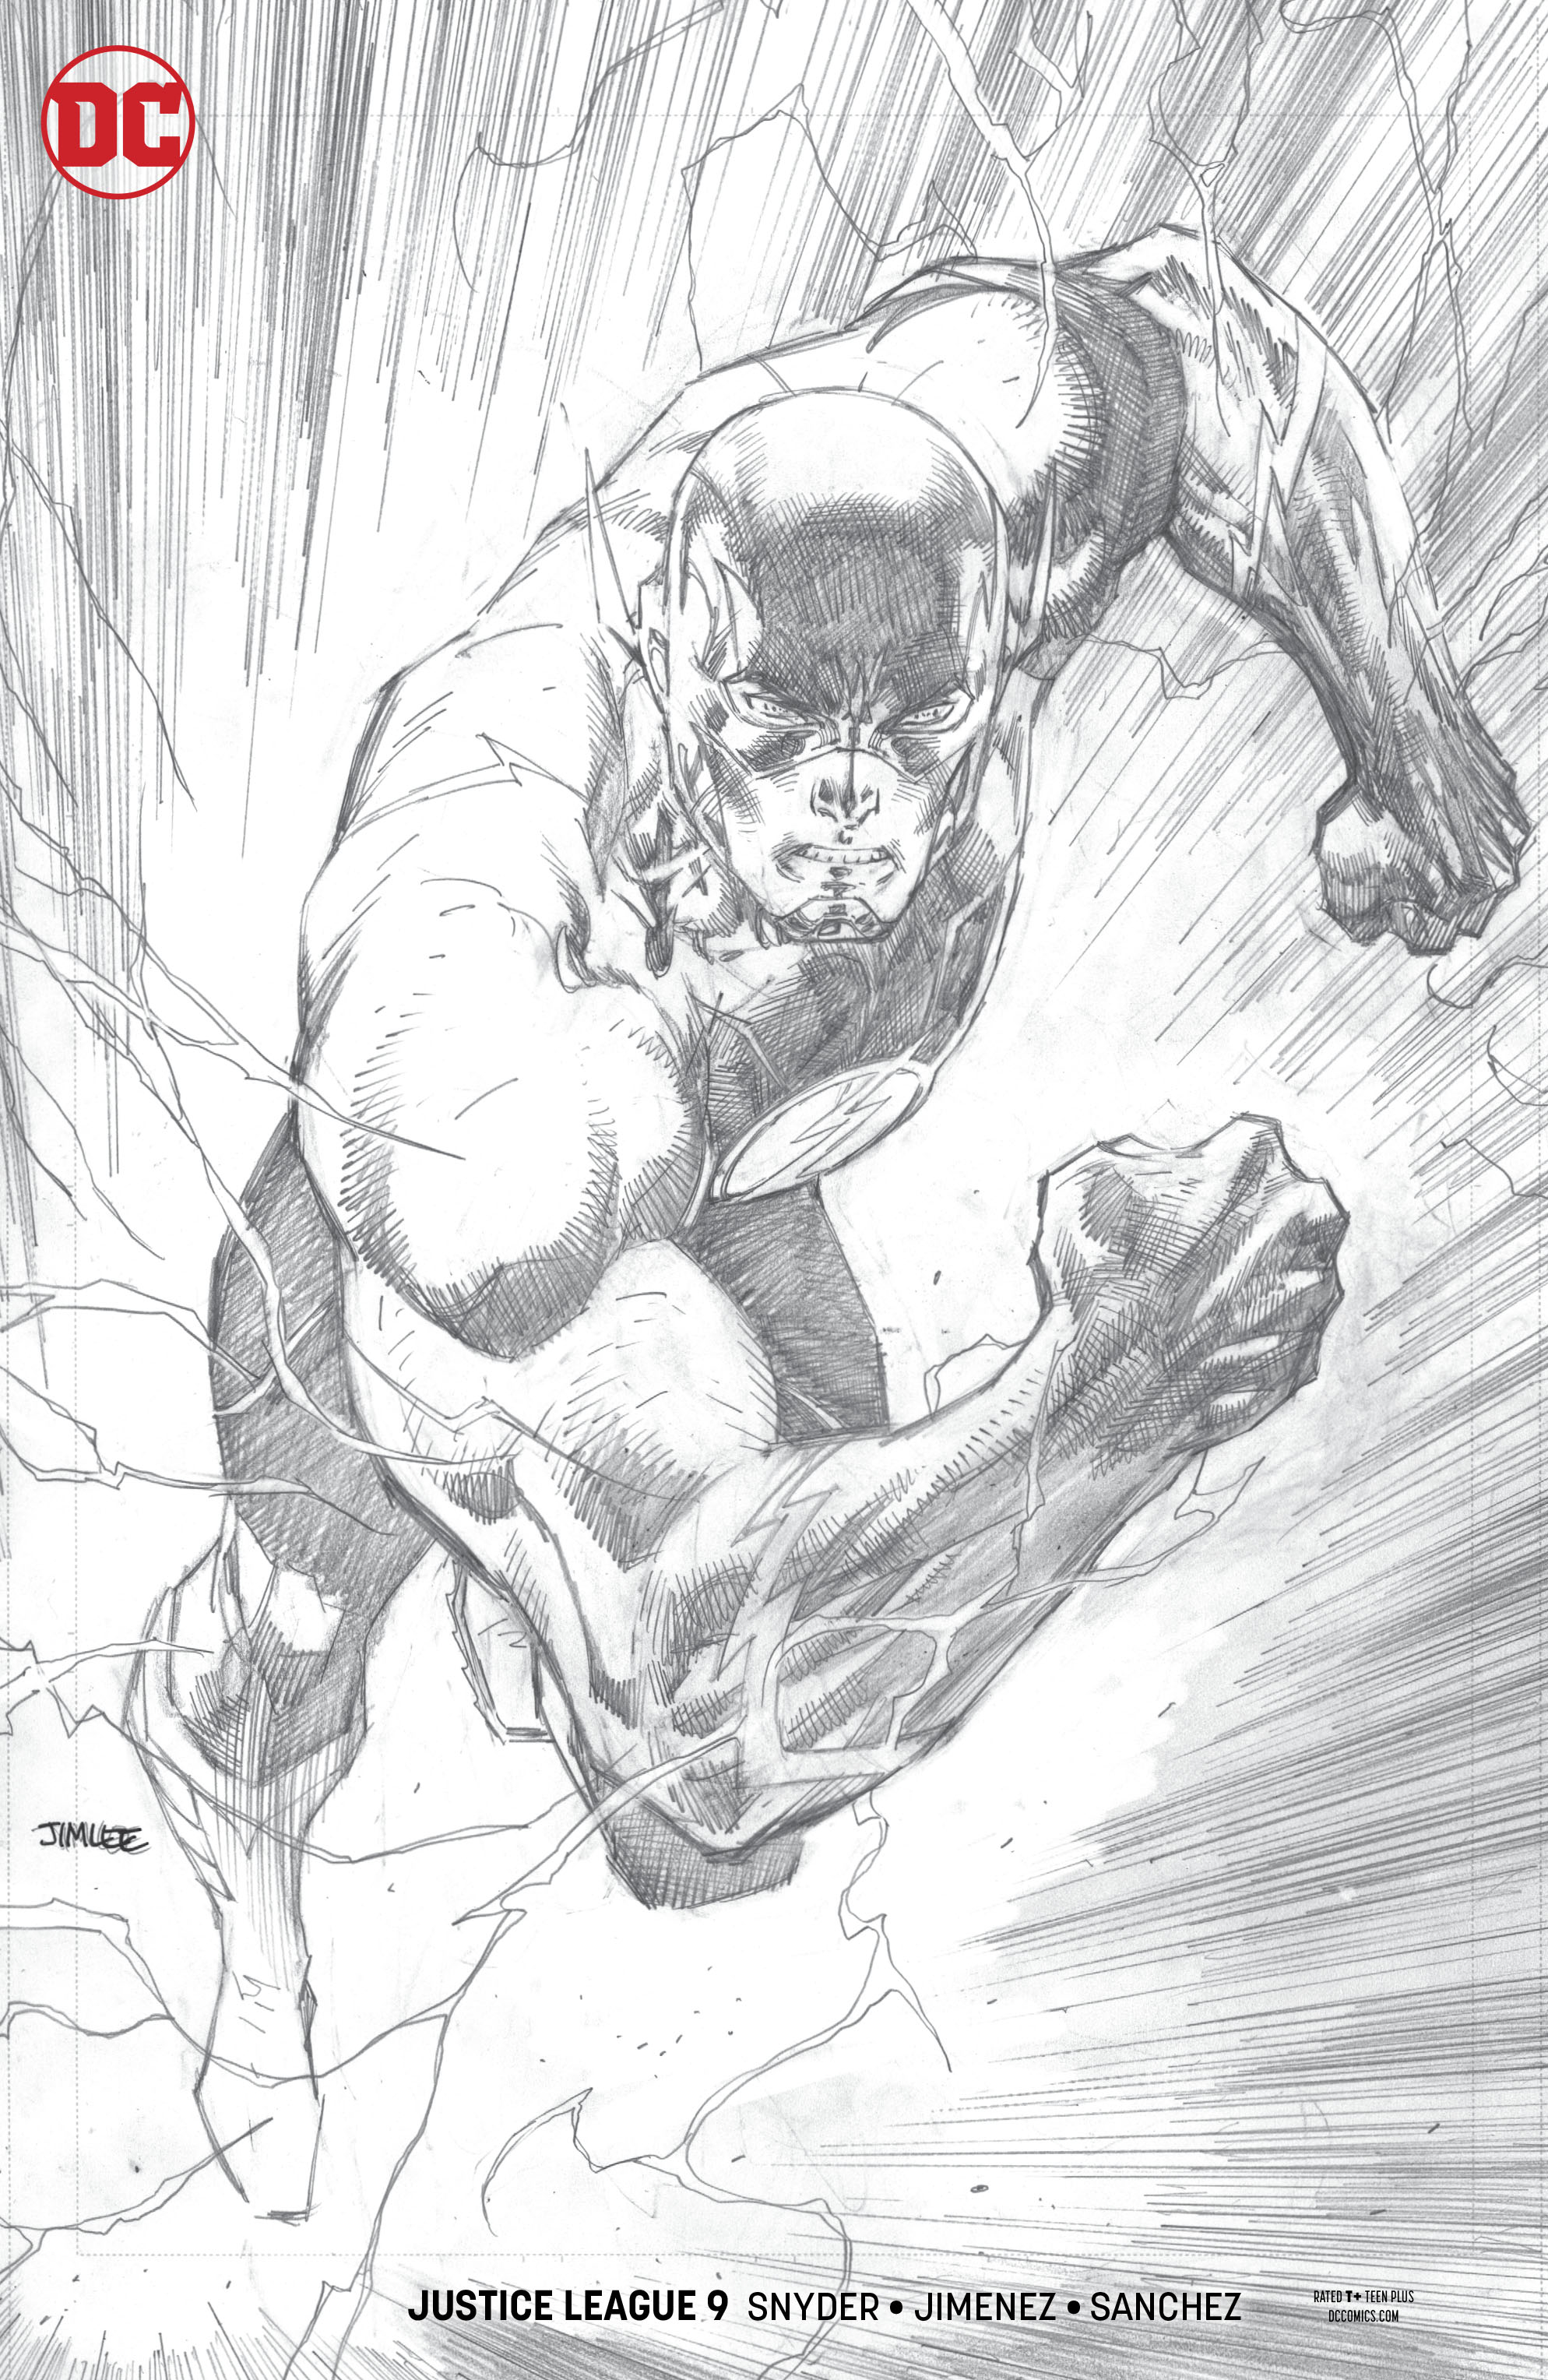 JUSTICE LEAGUE #9 JIM LEE PENCIL VAR ED (DROWNED EARTH)